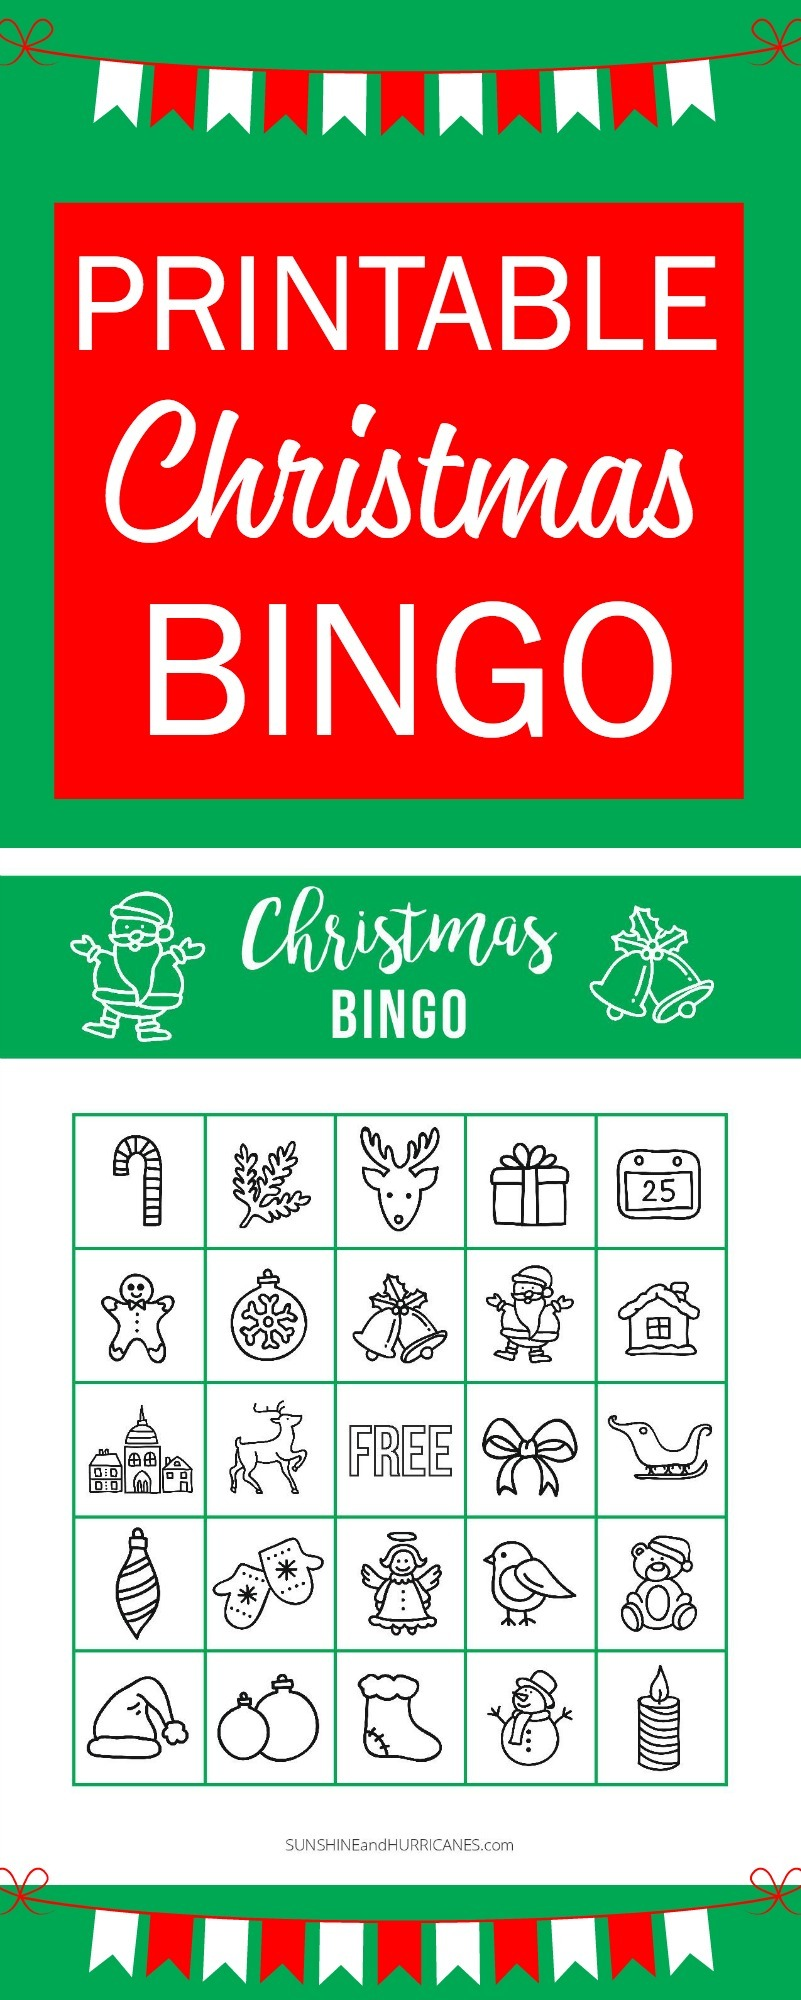 photo about Printable Family Games referred to as Printable Xmas BINGO - Holiday vacation Online games for Small children